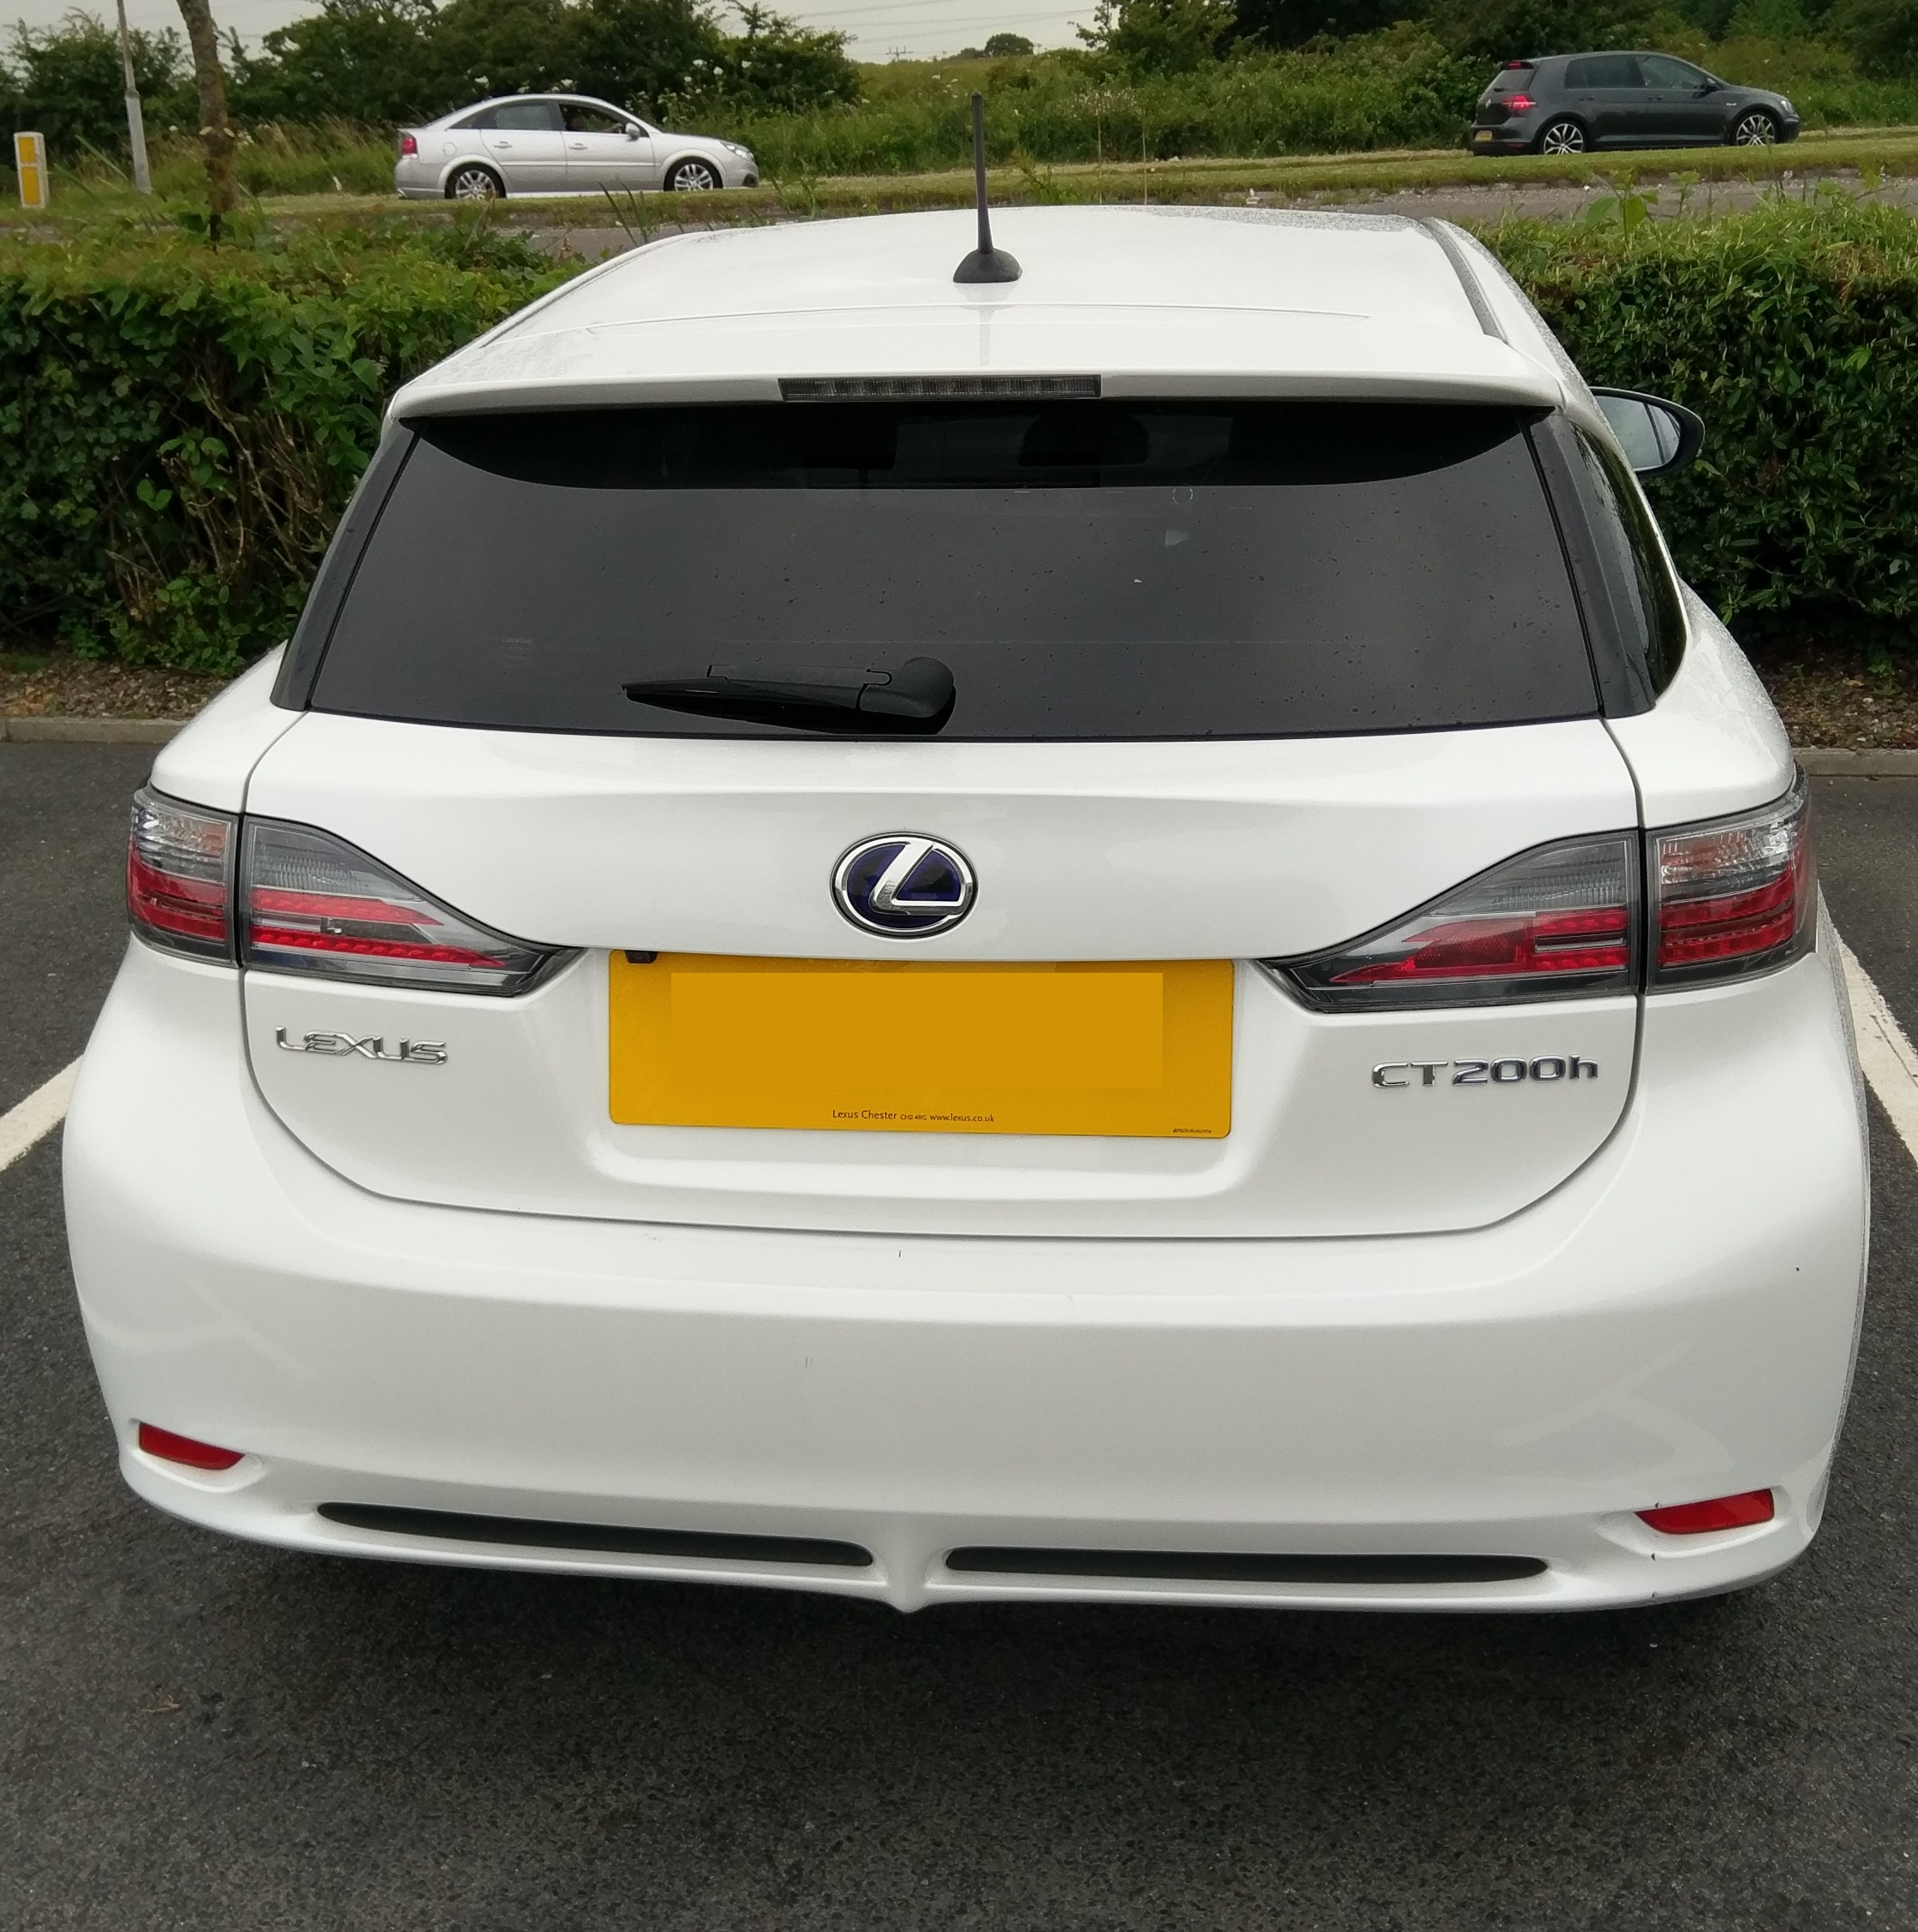 Andrew Whymans Blog Just Another Wordpress Site Part 2 Lexus Ct200h Wiring Diagram Petrol Hybrid Hatchback Yes Thats The One I Mentioned In A Previous About Test Driving Ive Been Loving Every Minute Of It And